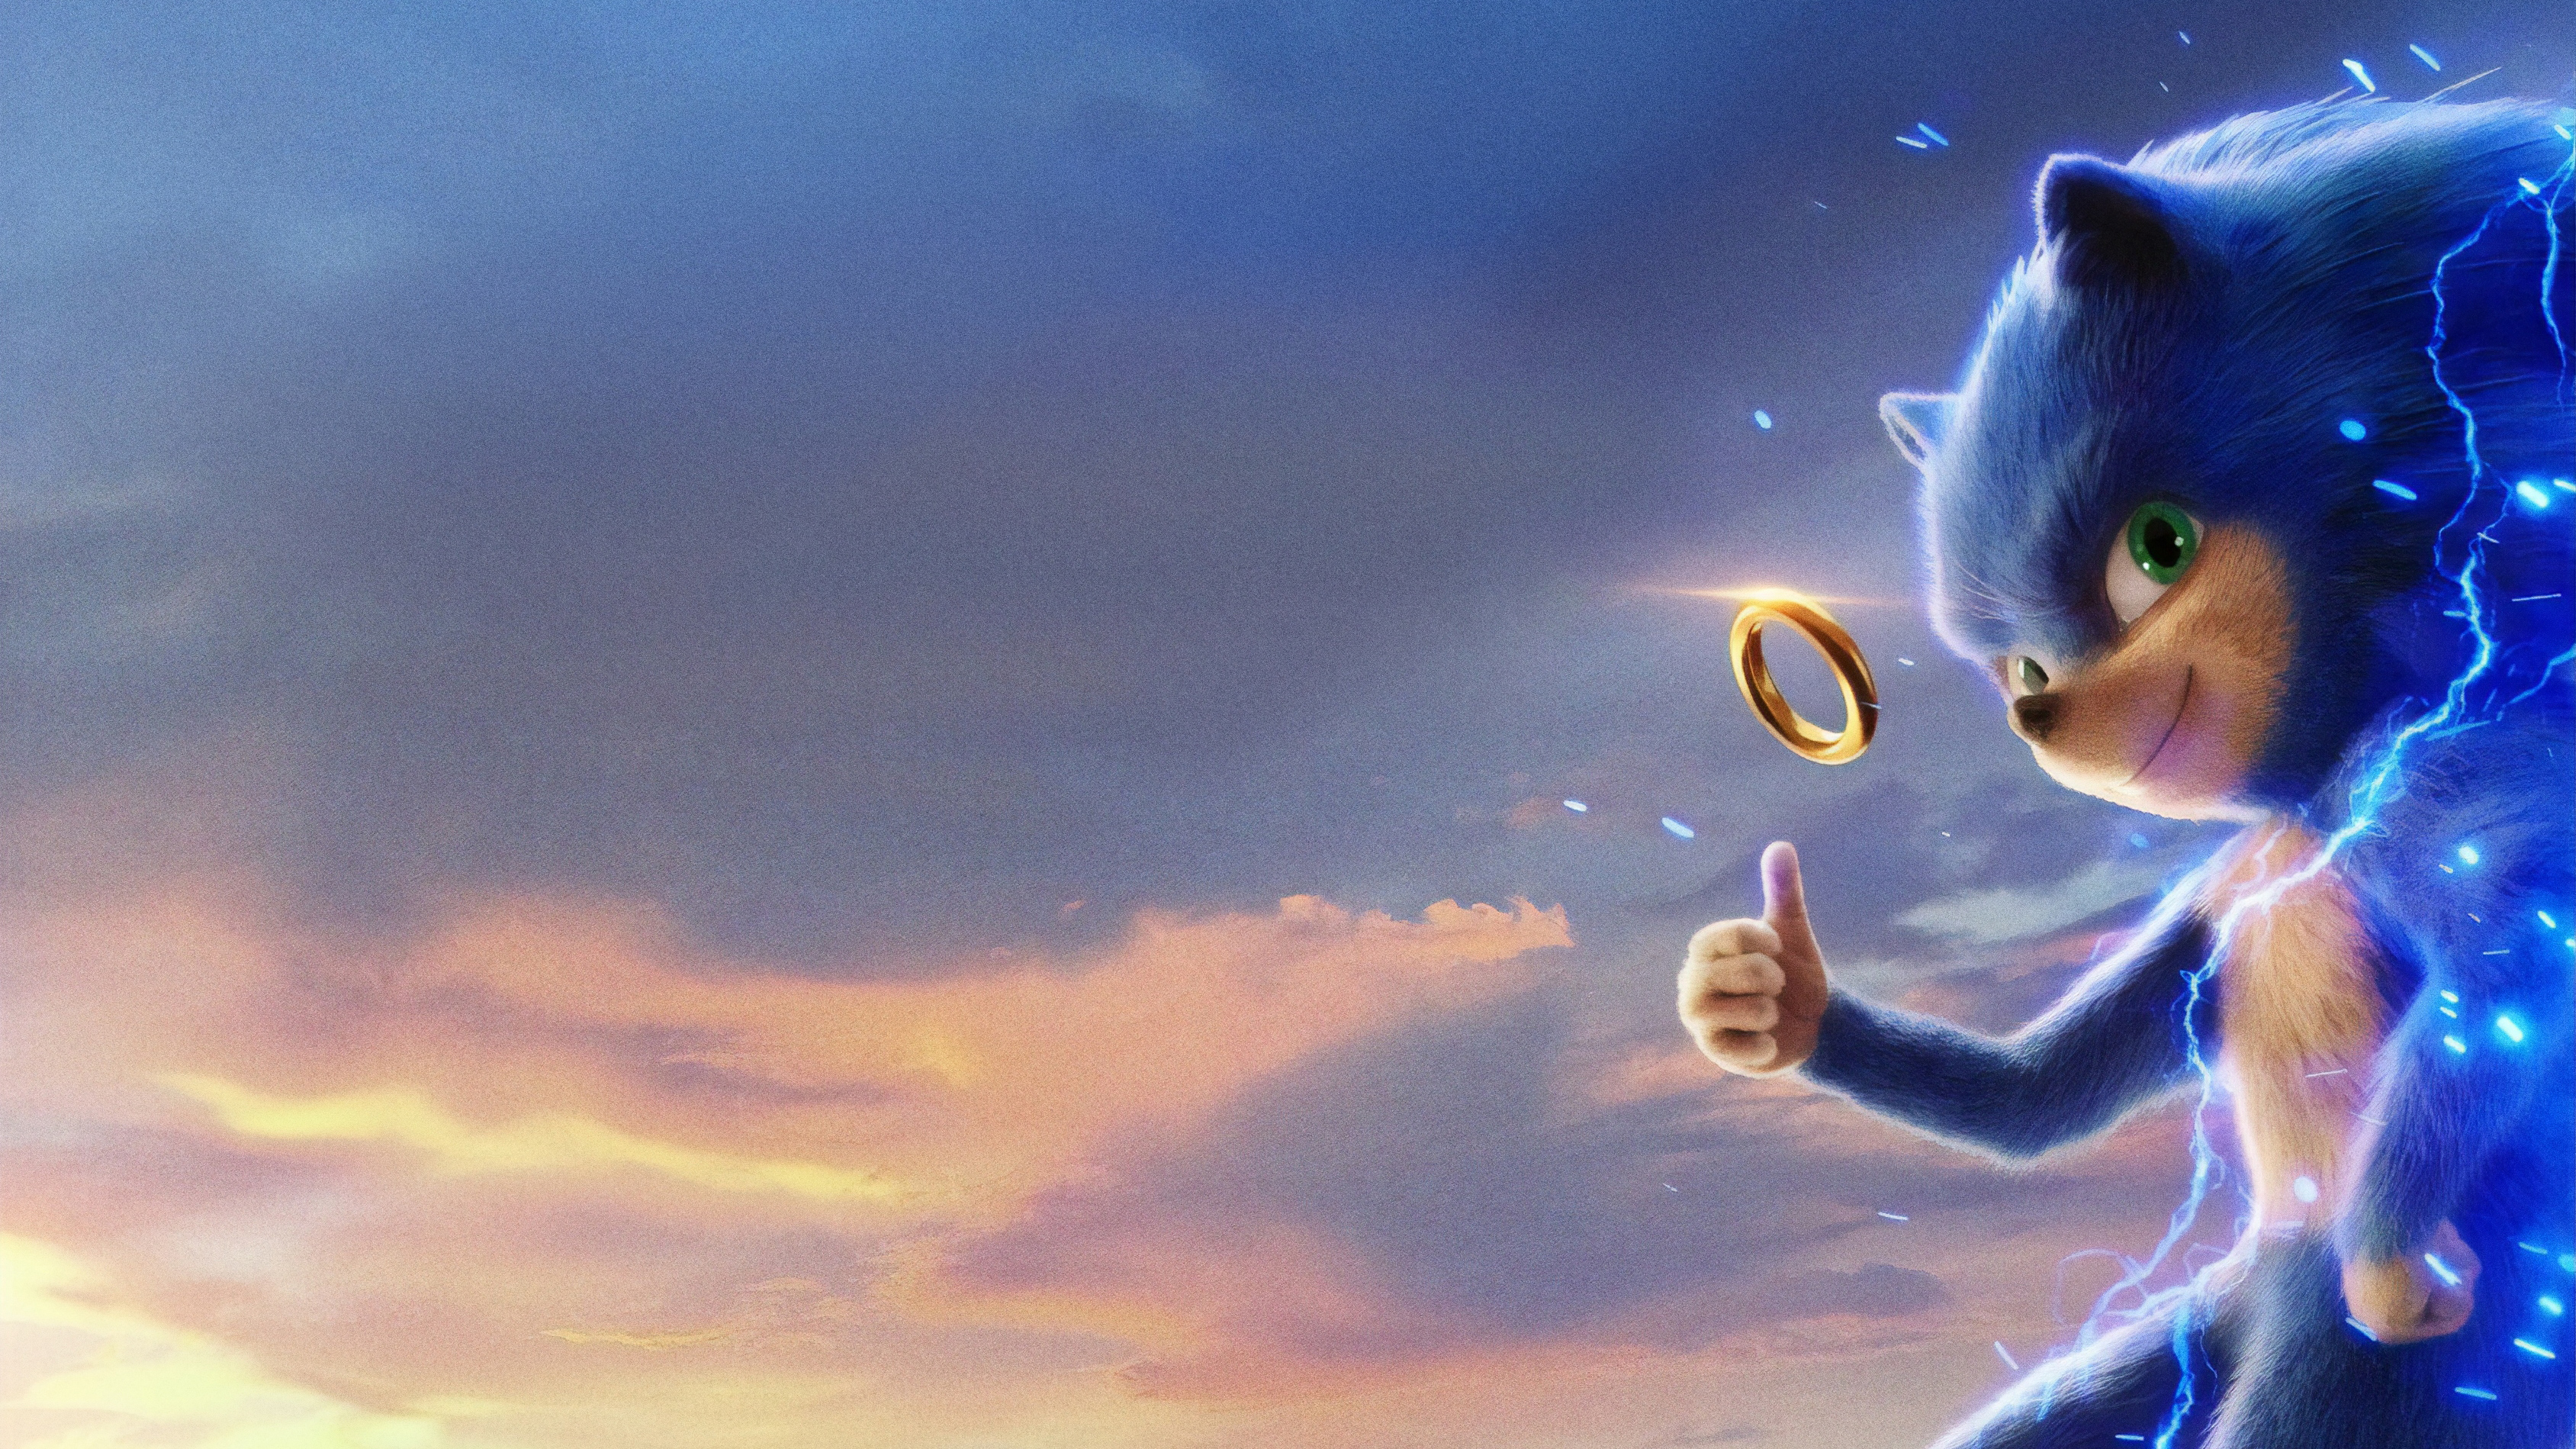 Sonic The Hedgehog 2019 2296005 Hd Wallpaper Backgrounds